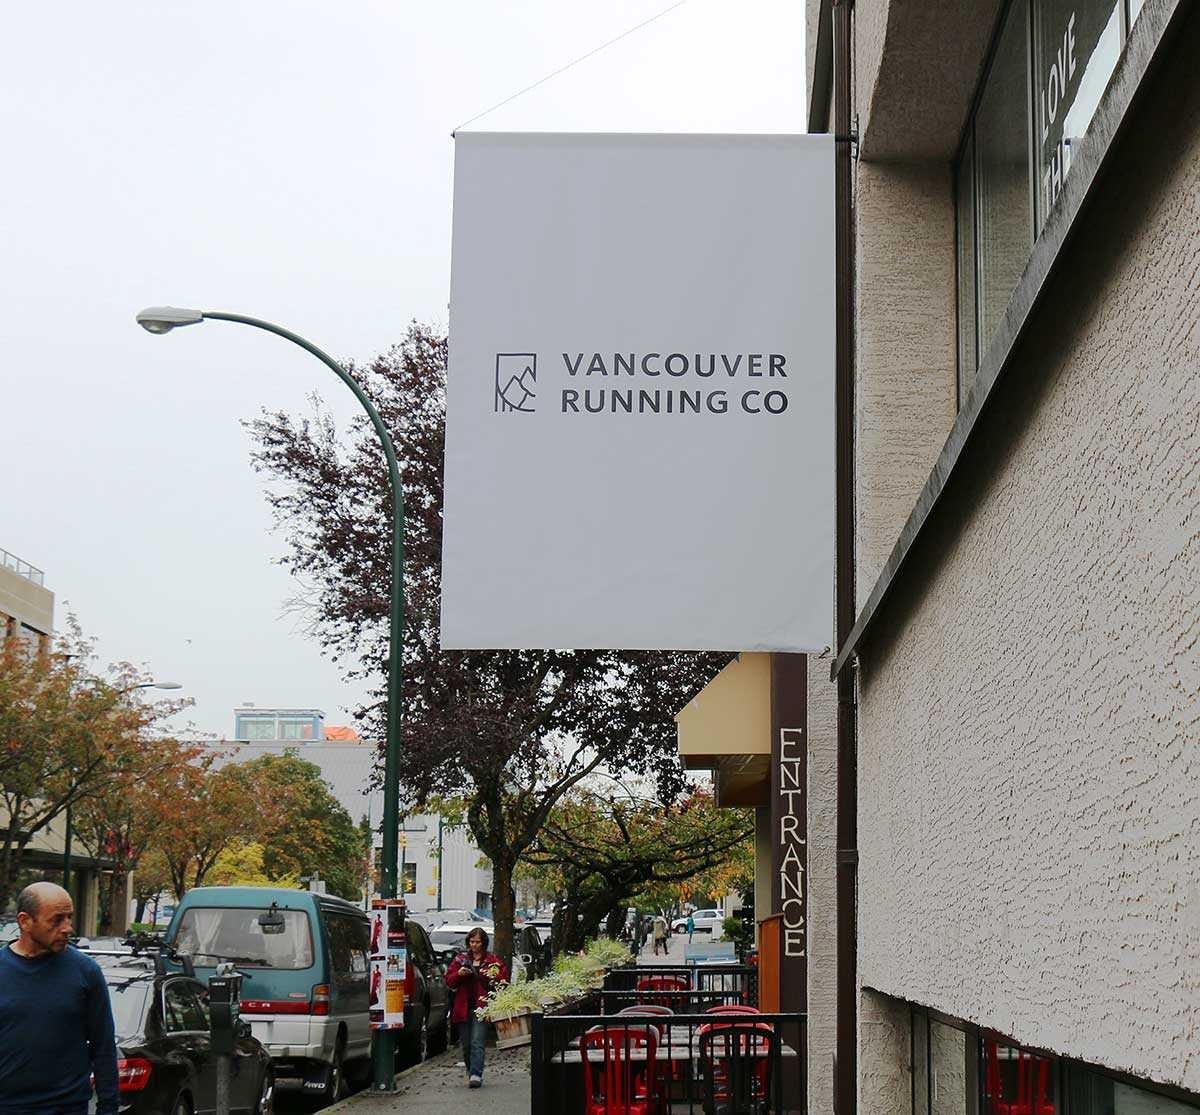 Vancouver Running Co